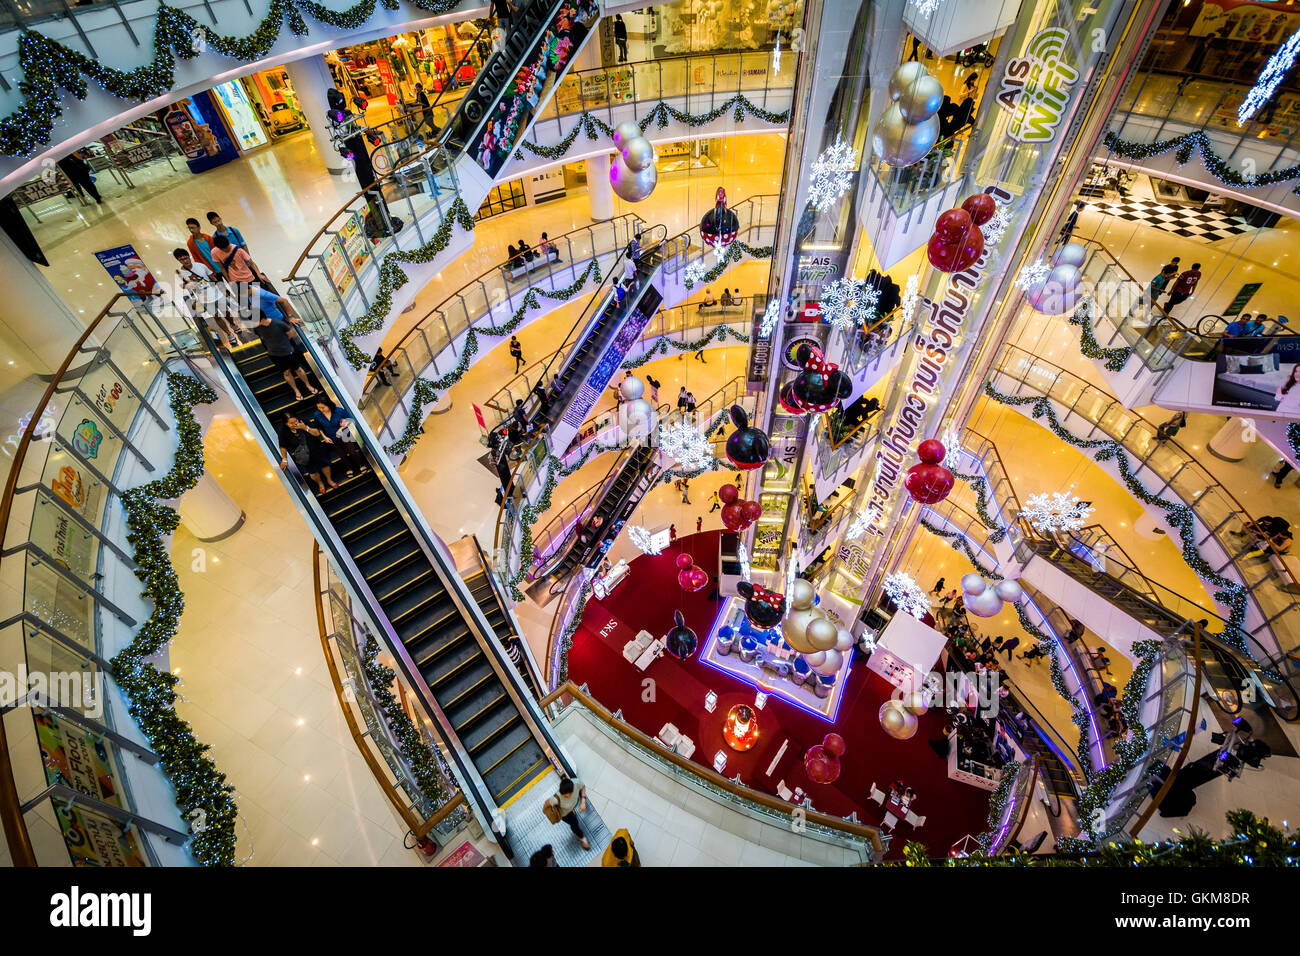 The interior of the CentralWorld Mall, at Siam, in Bangkok, Thailand. - Stock Image